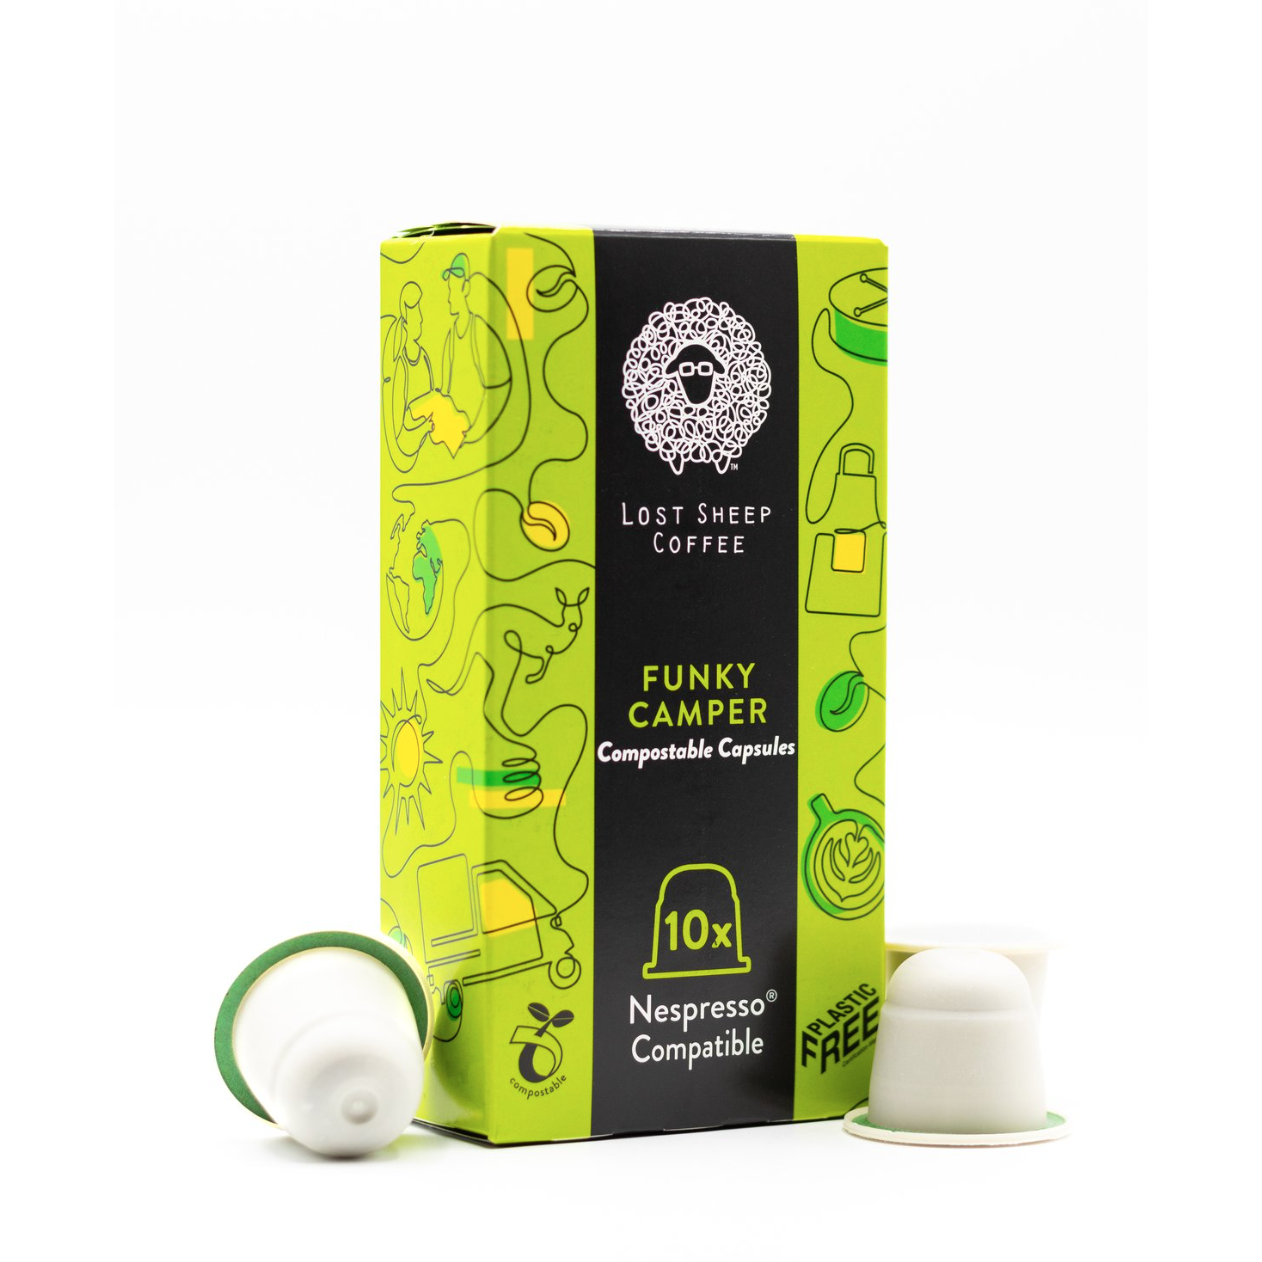 10X Funky Camper - 100% Fully Compostable & Plastic Free Nespresso® Compatible Coffee Capsules